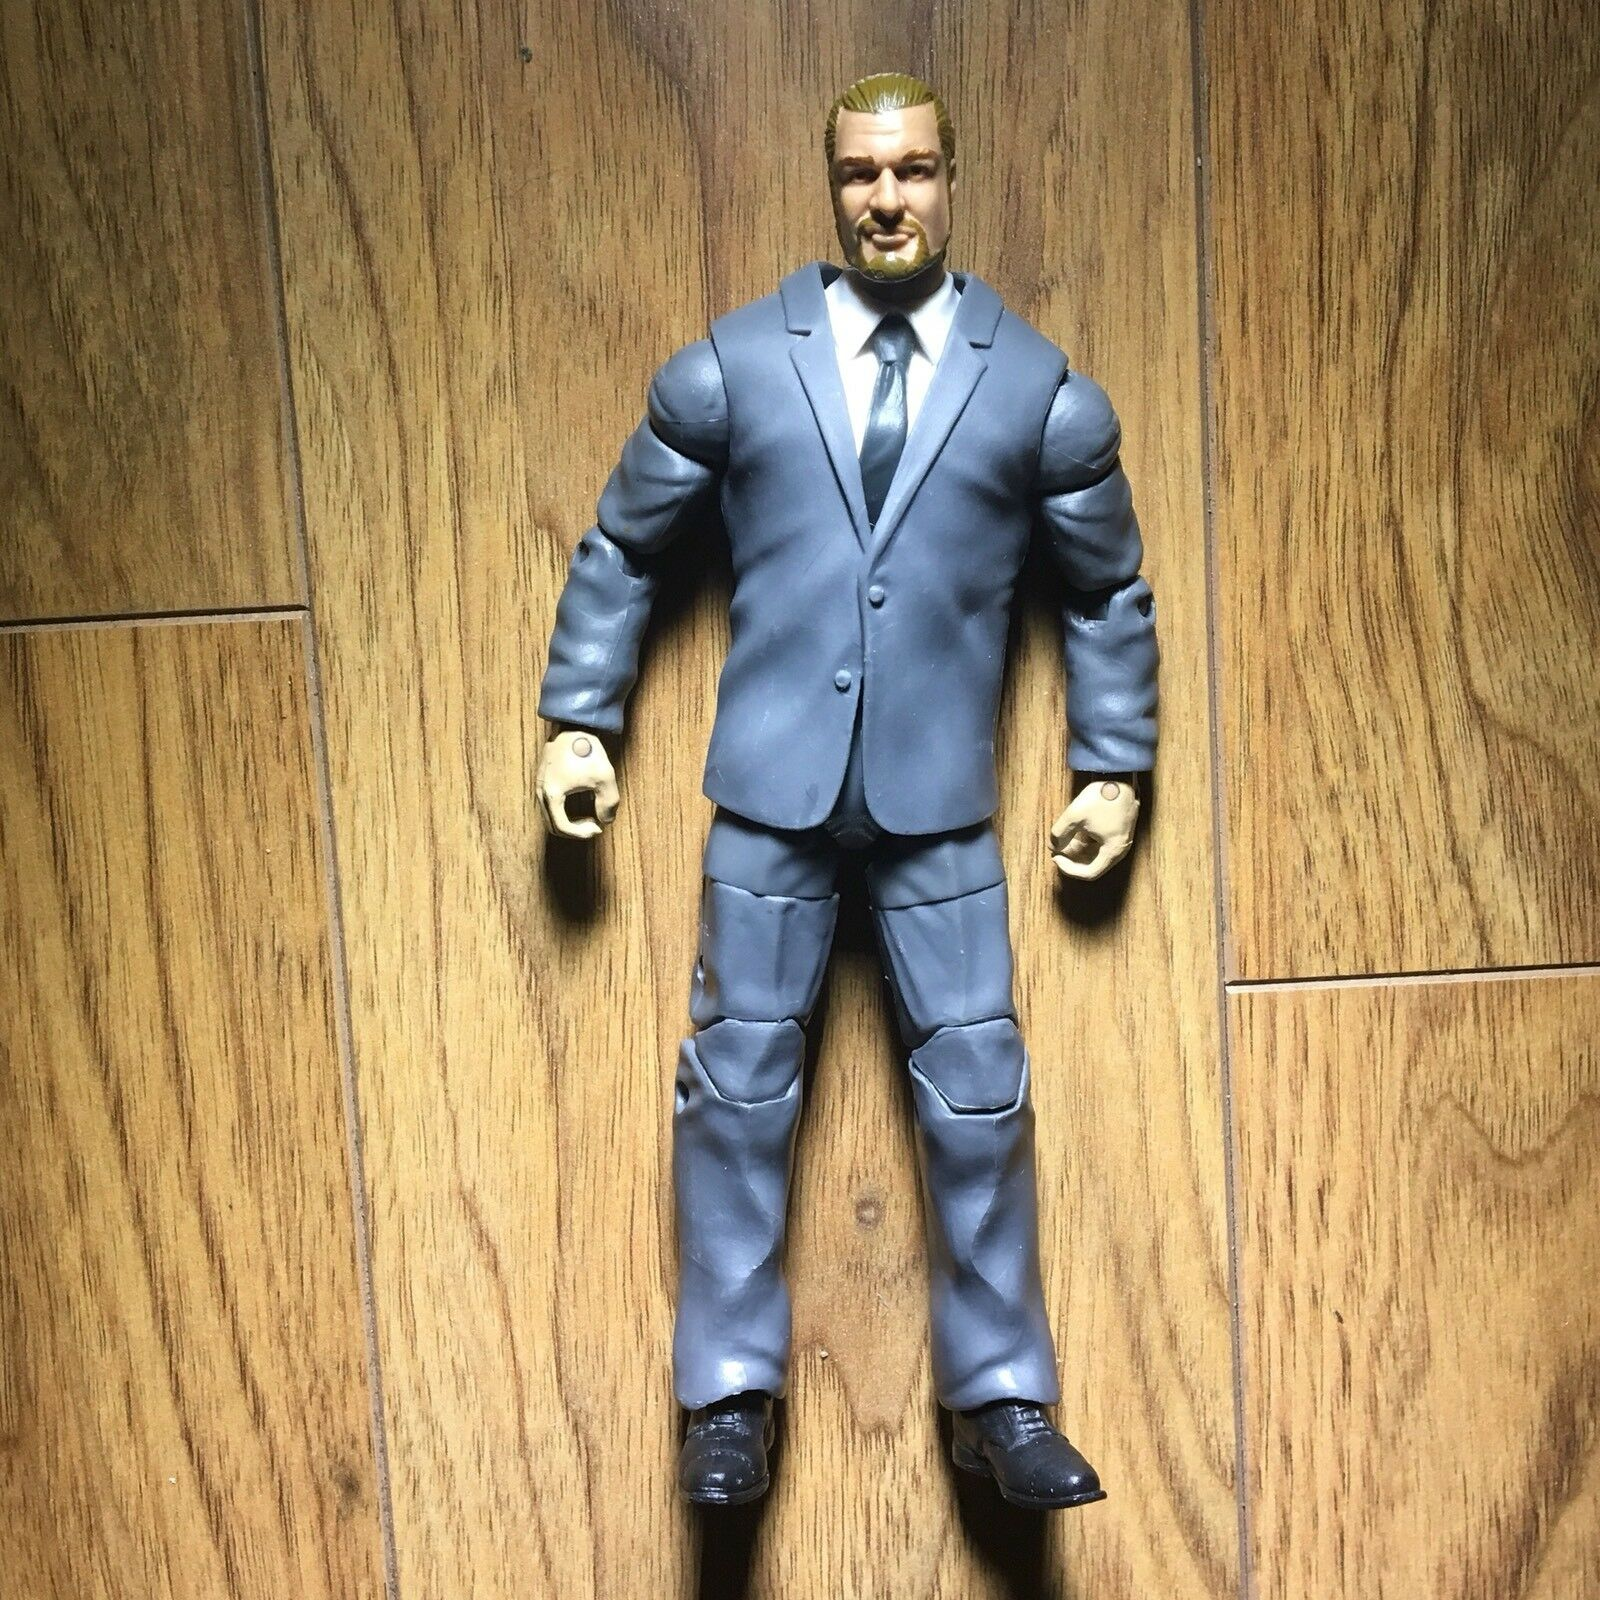 WWE ELITE COO TRIPLE H FIGURE TOYS R US MAILAWAY EXCLUSIVE AUTHORITY SUIT Rare